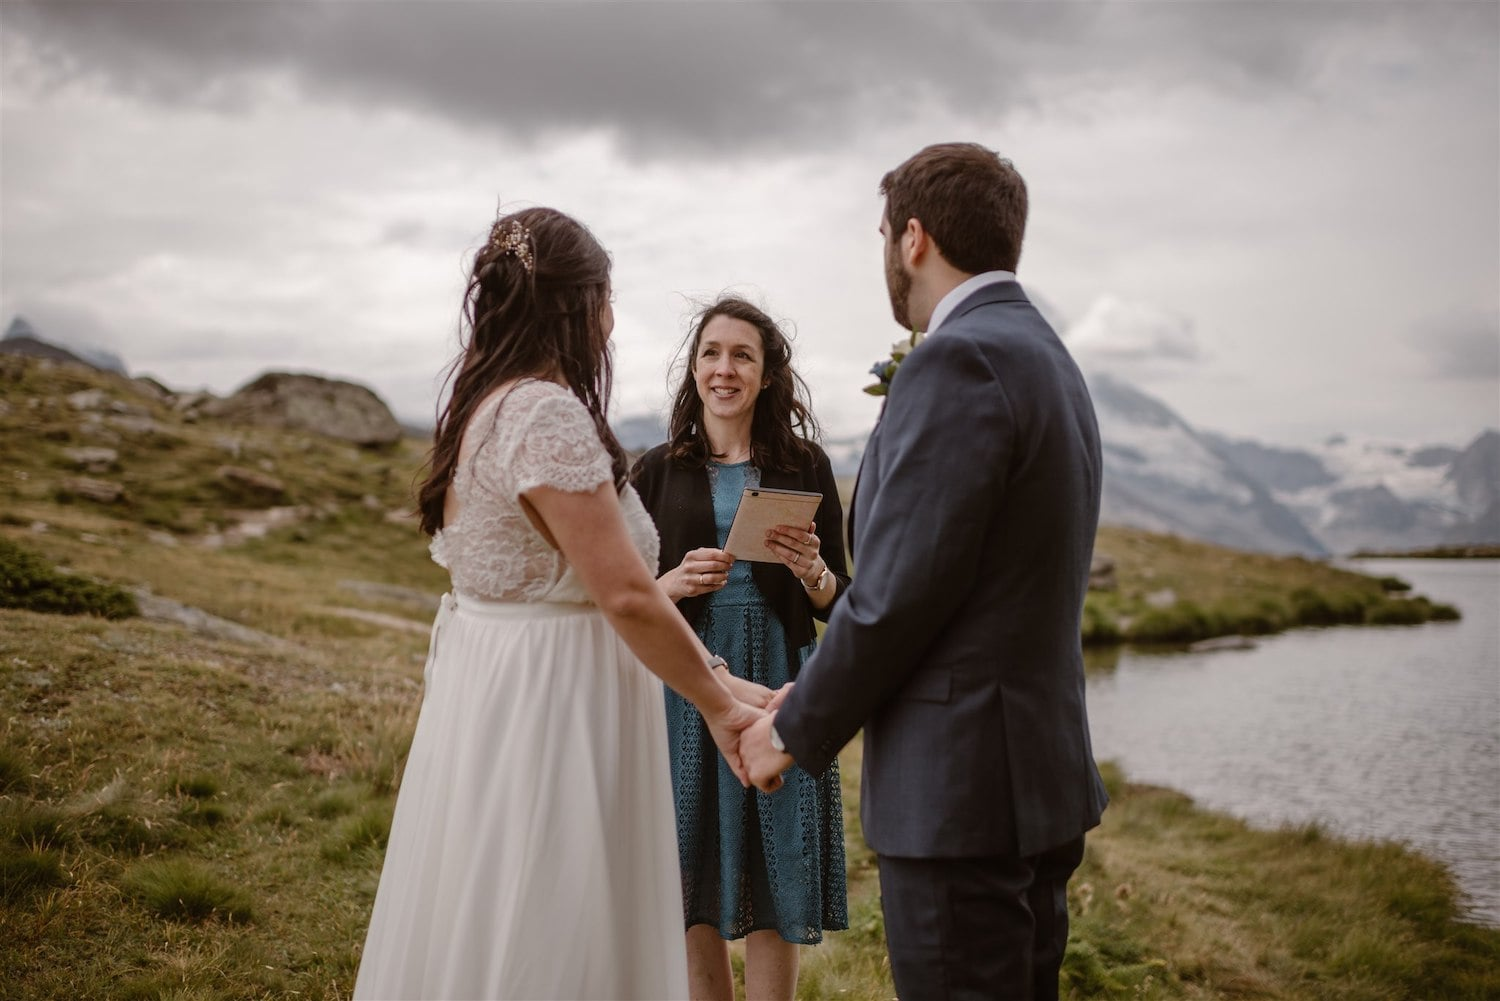 Summer elopement in Zermatt by Marylin Rebelo